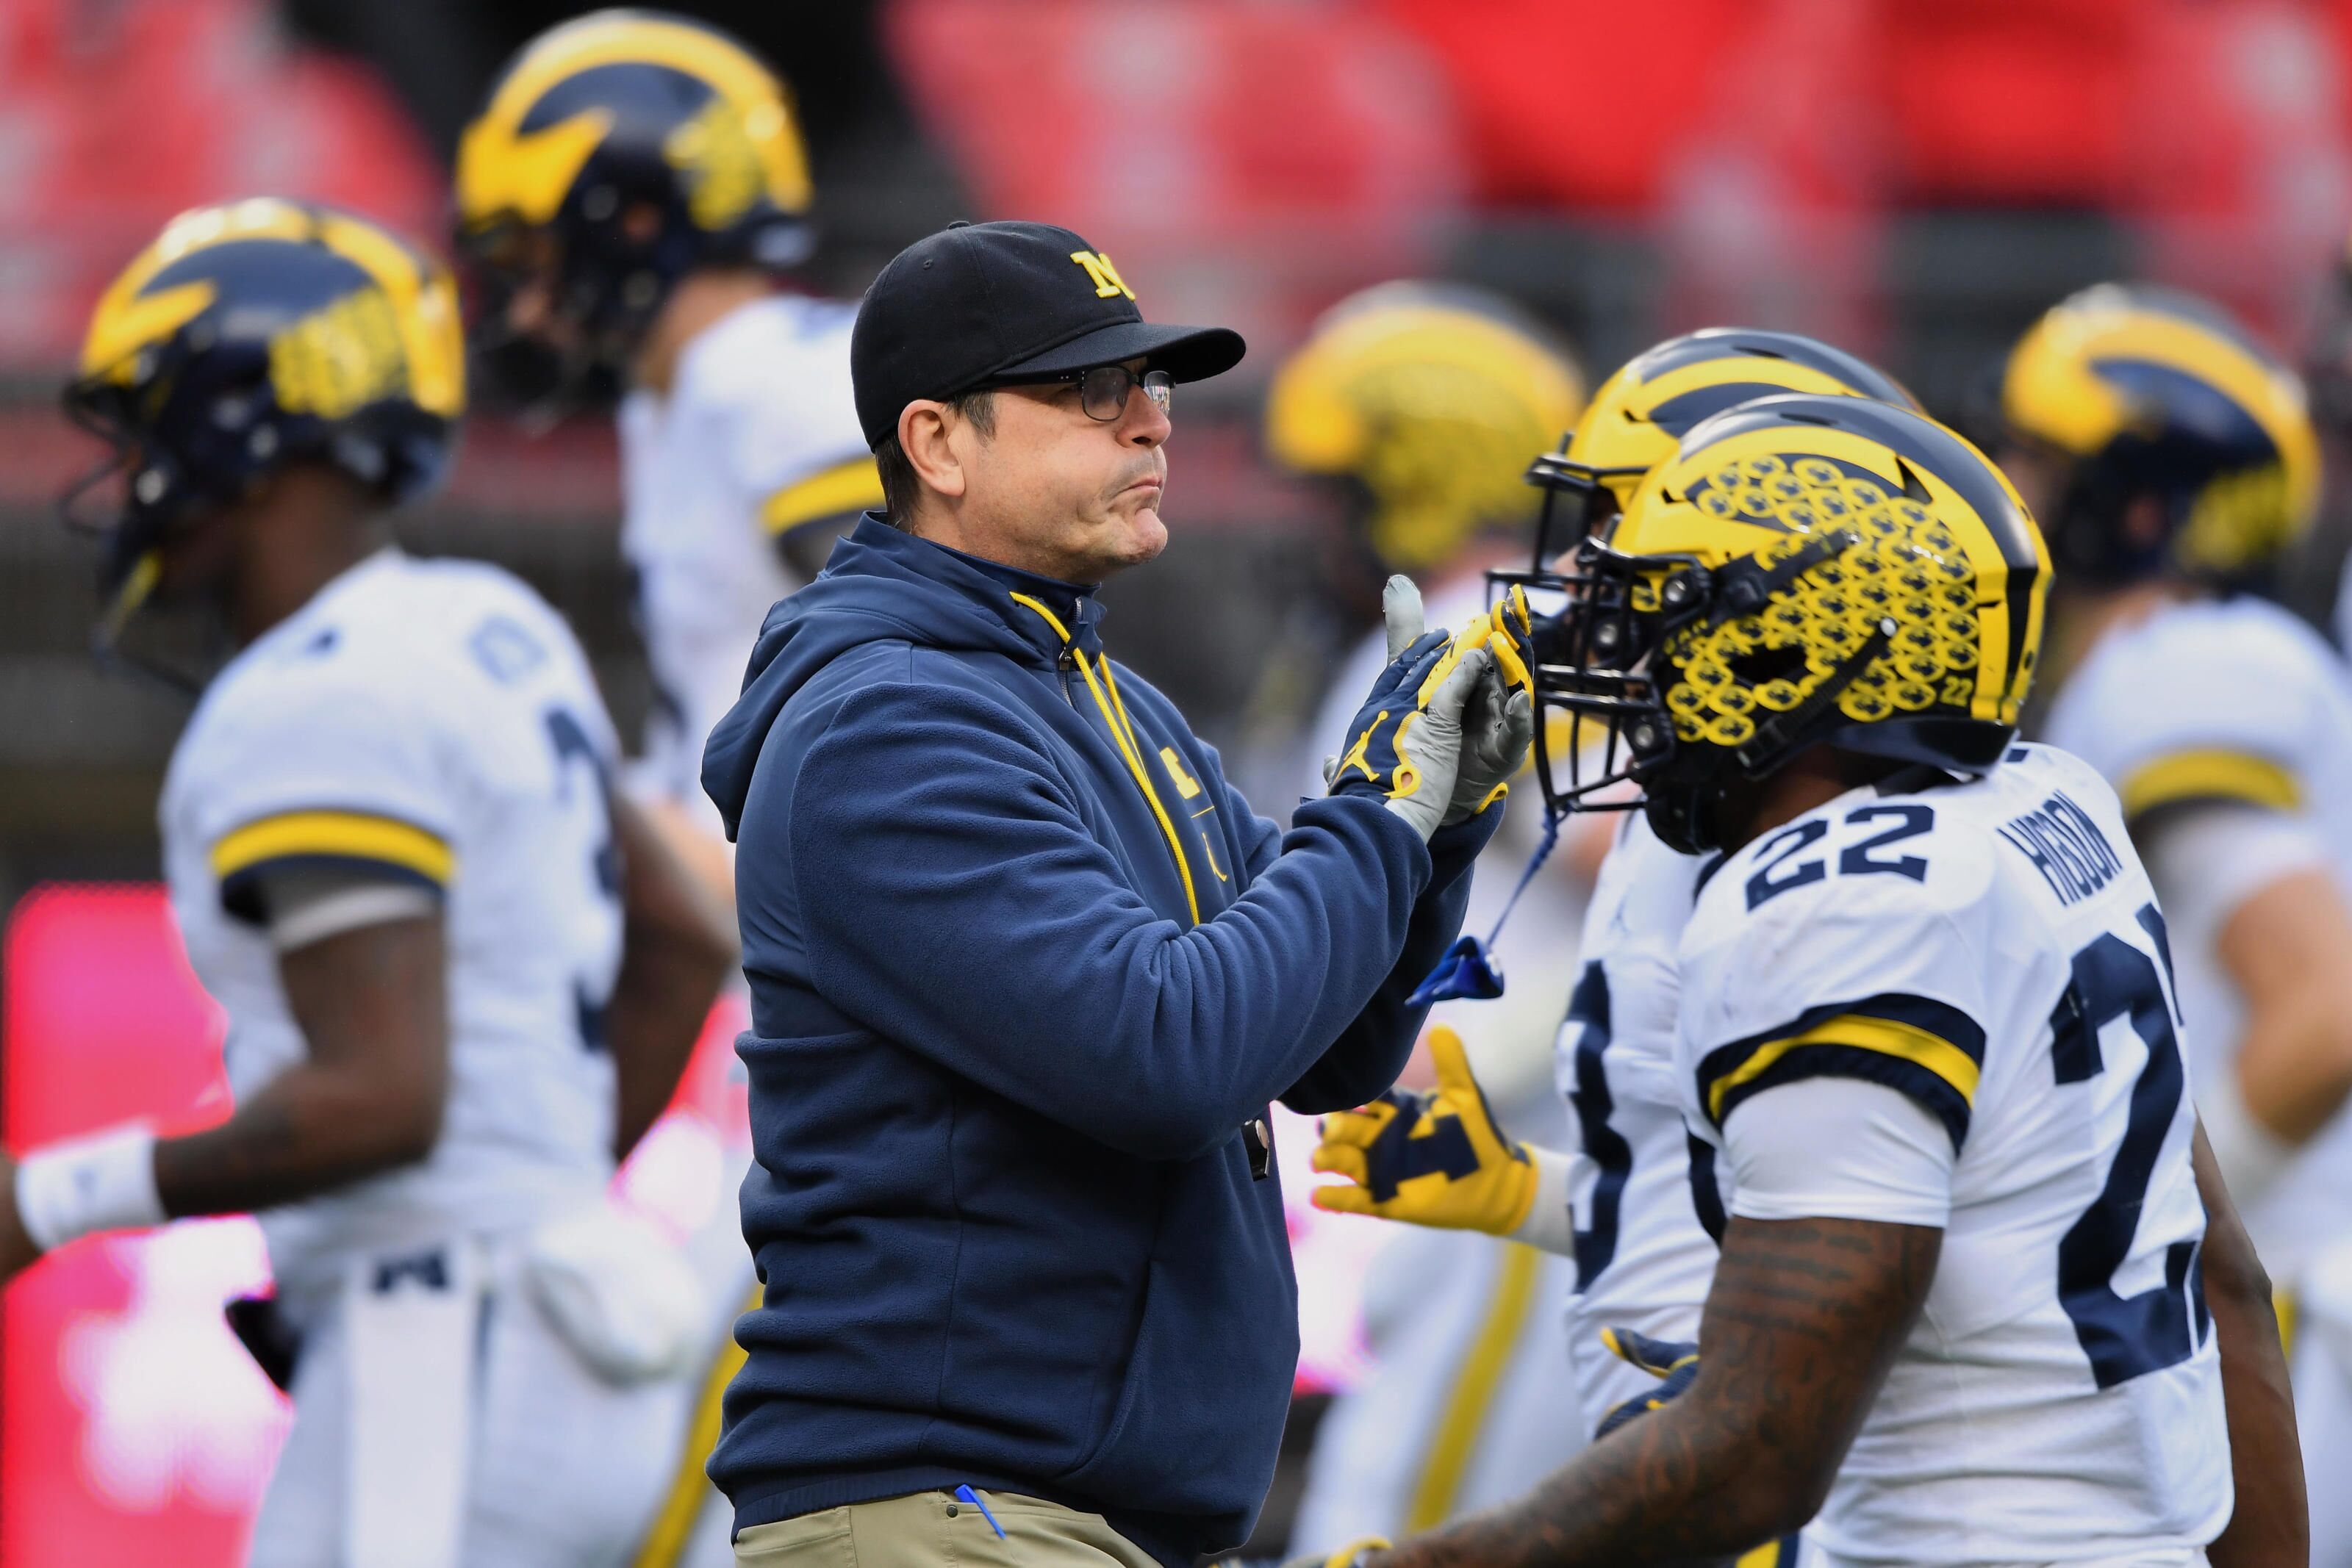 Michigan Football: Is Jim Harbaugh on the hot seat entering 2019?